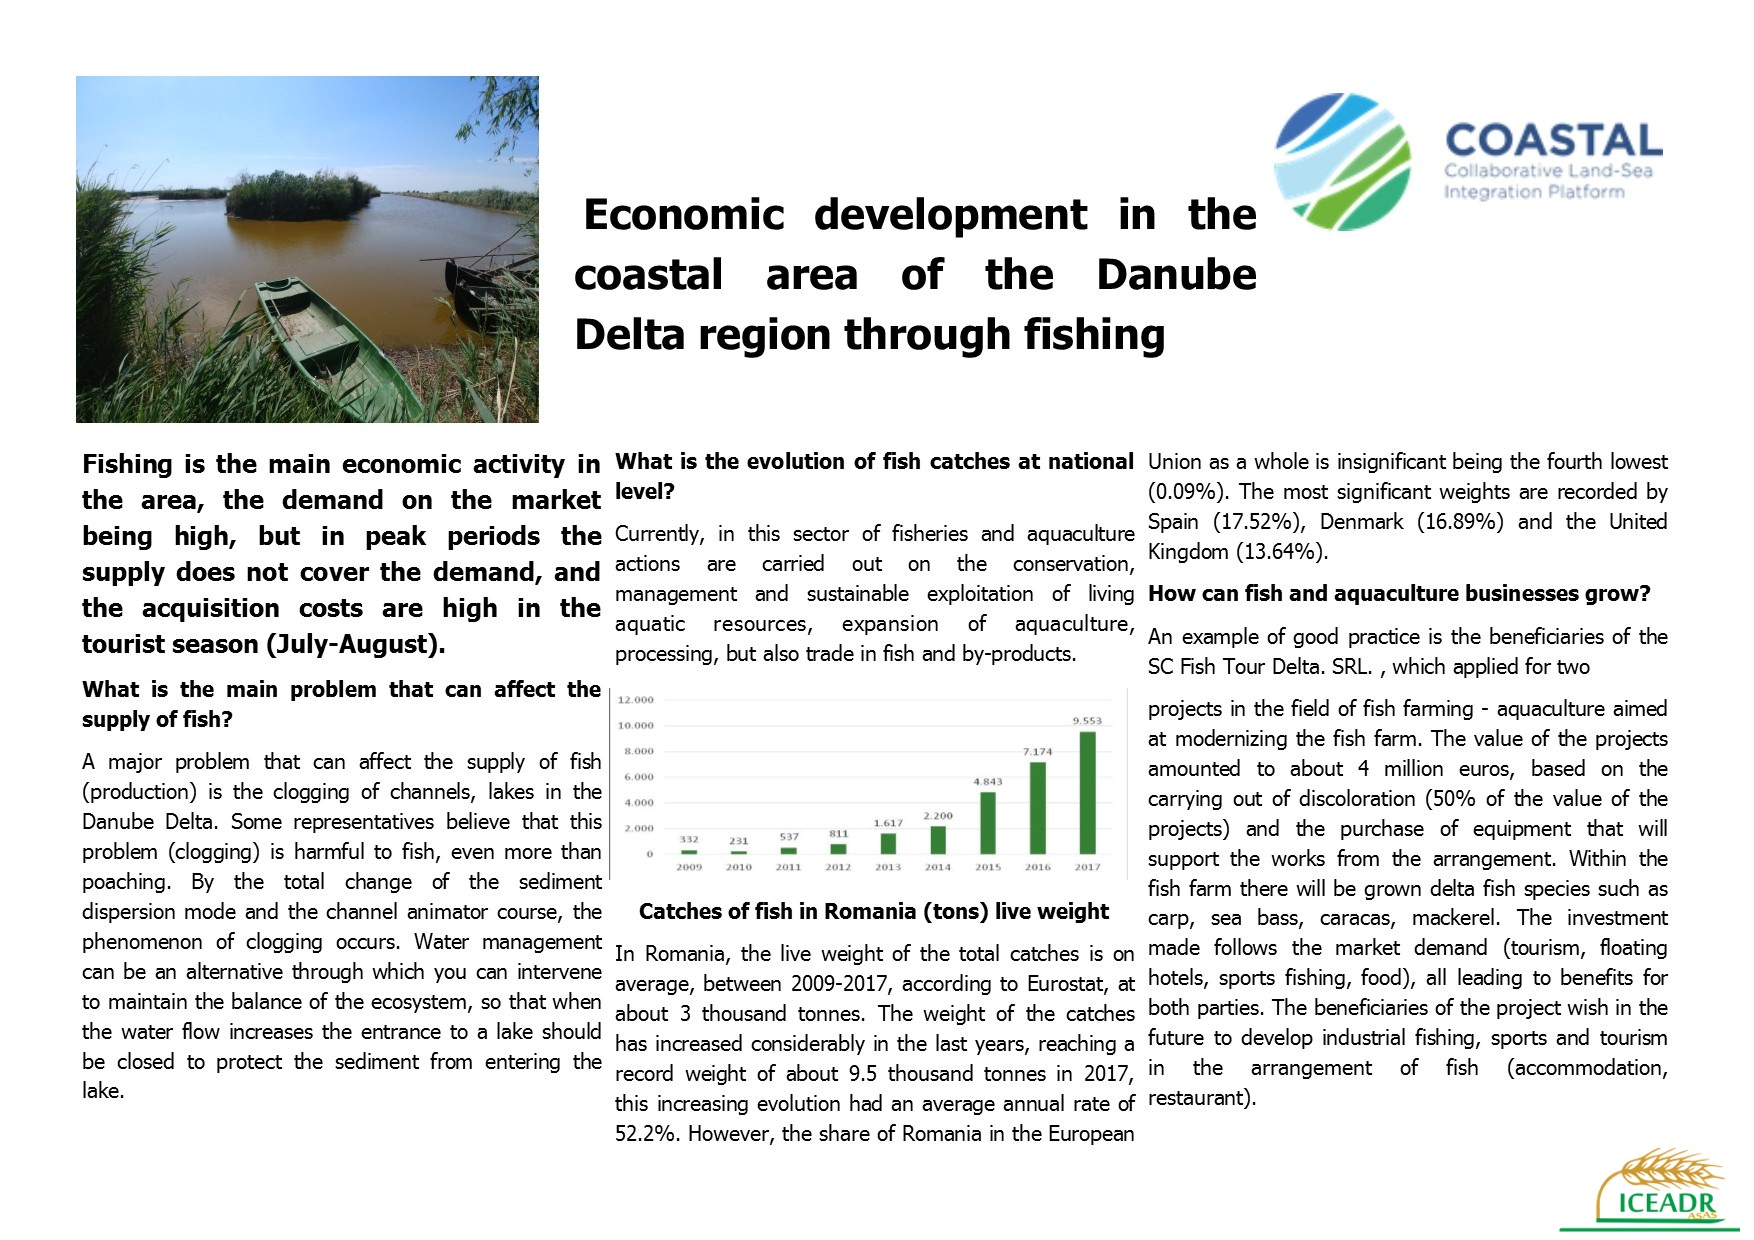 Economic development in the coastal area of the Danube Delta region through fishing